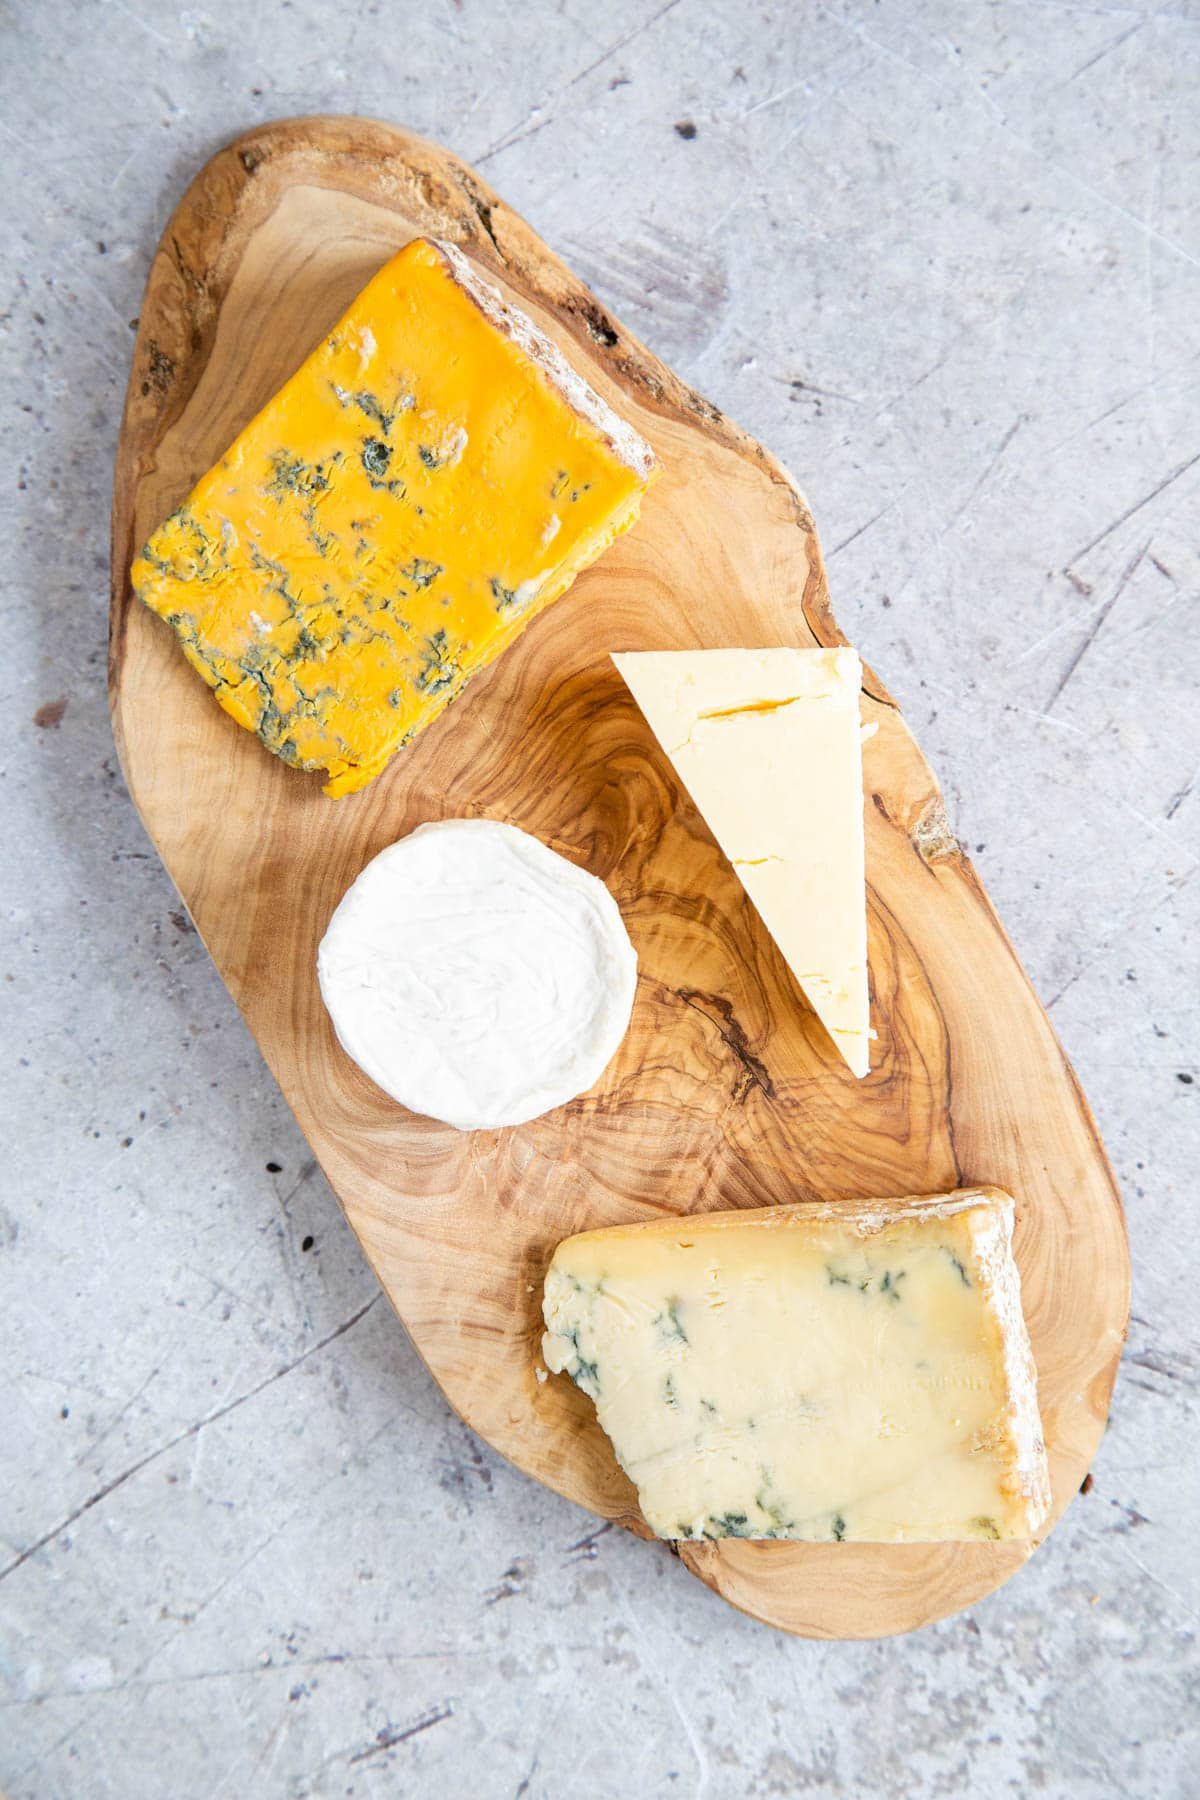 A selection of four cheeses - 2 blue, one plain and one goat's cheese, arranged on an olivewood board.